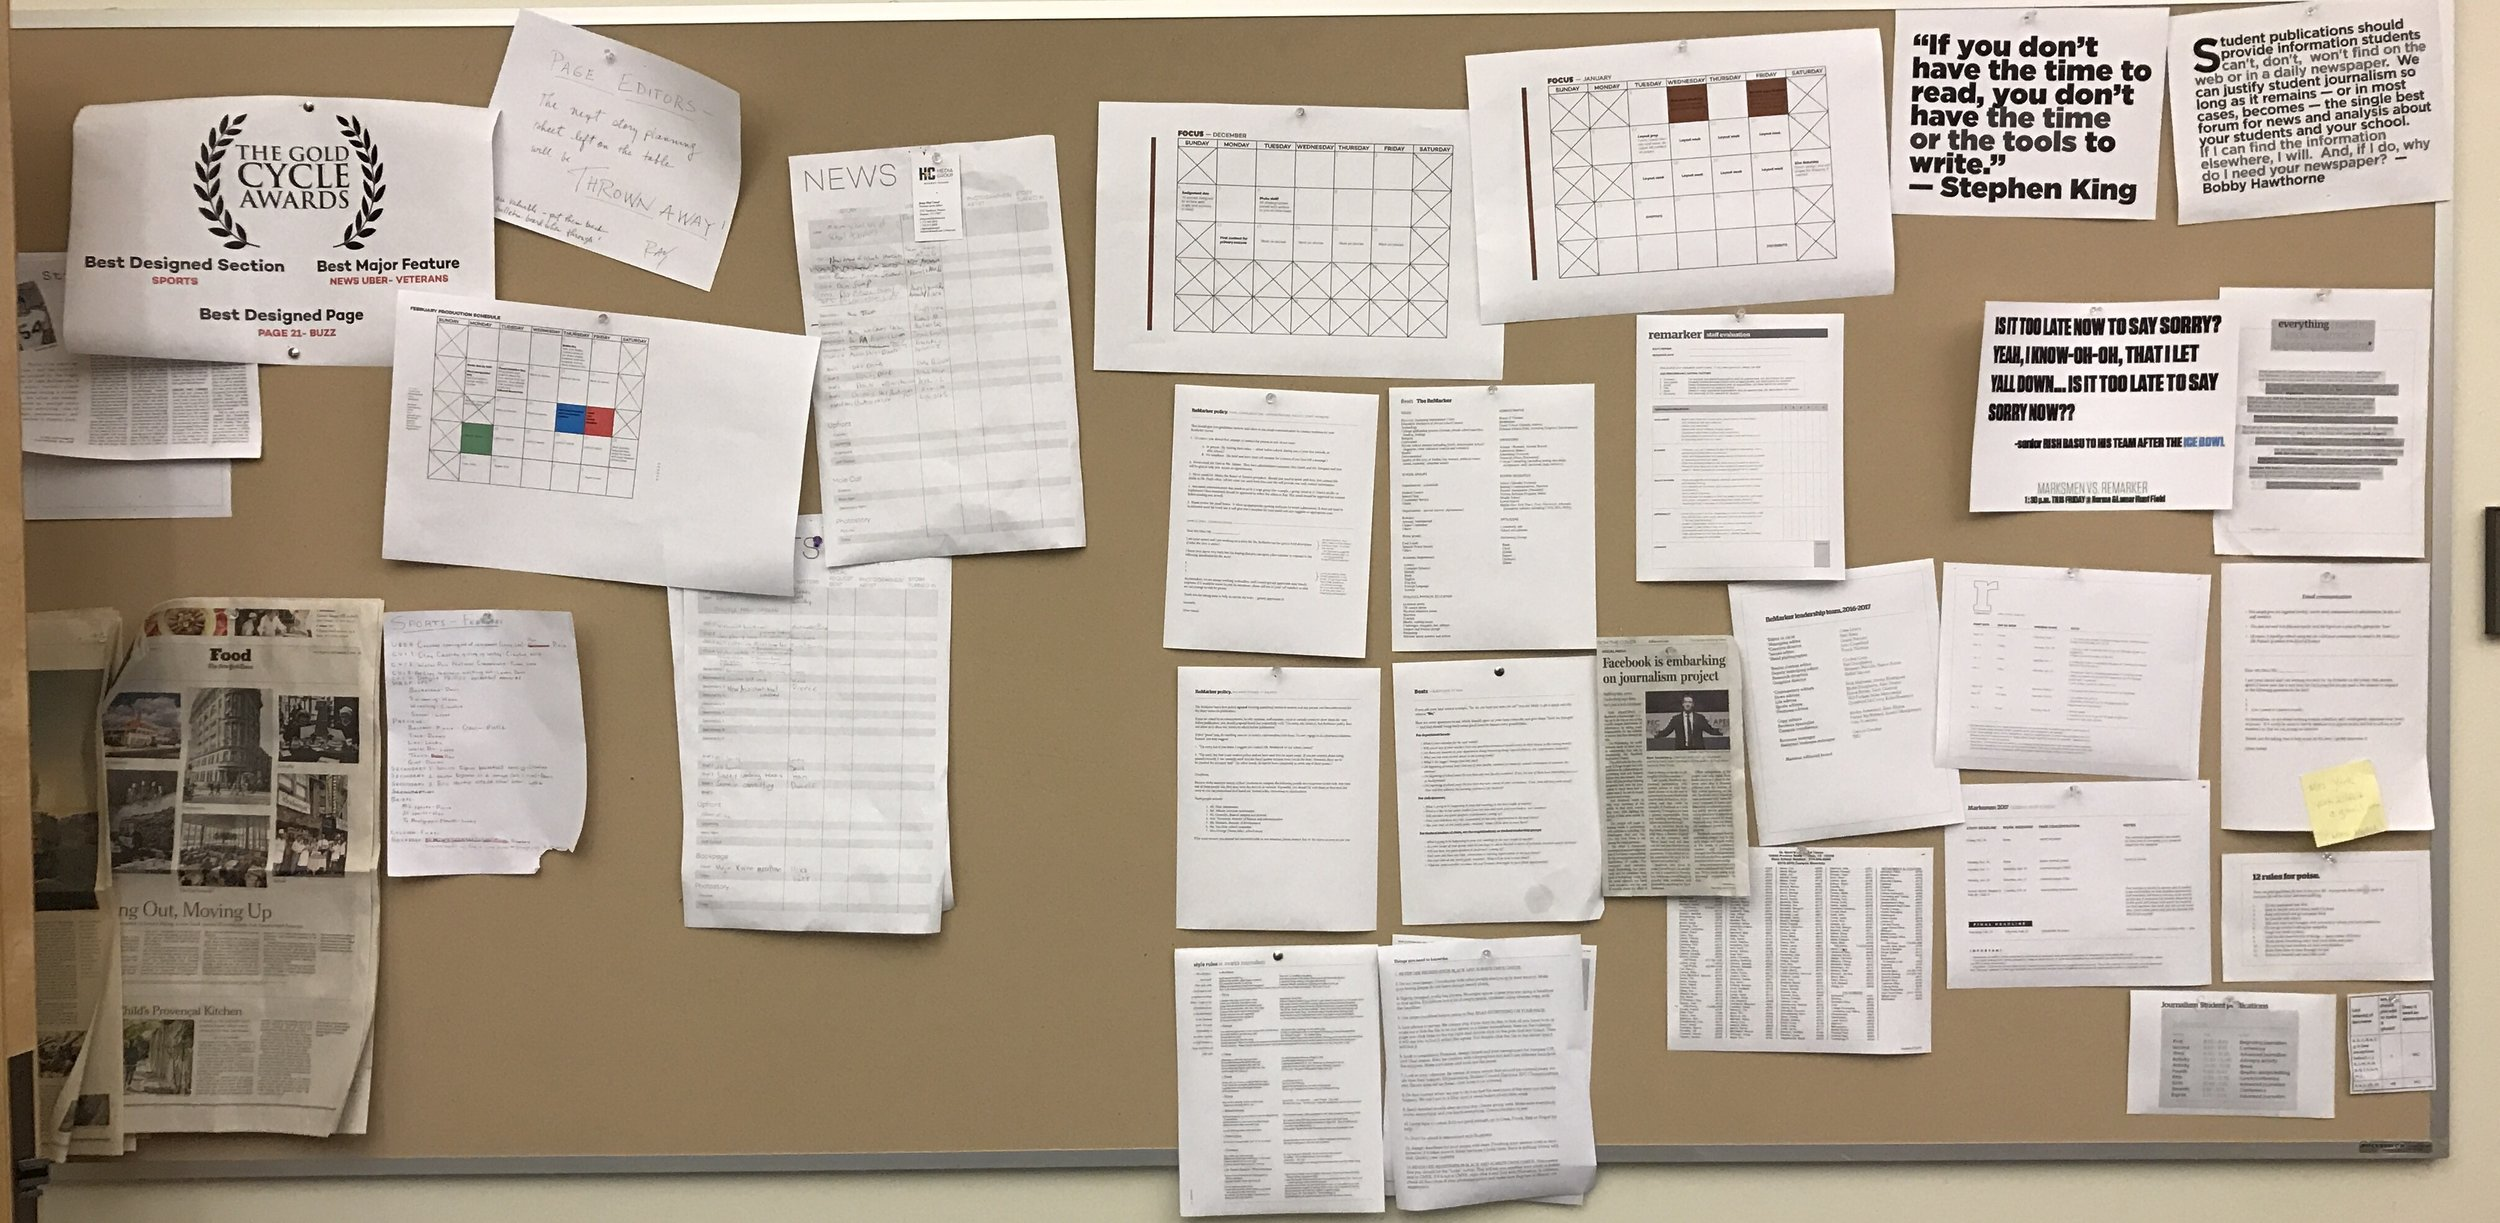 It is my job also that the bulletin board, or wall of assignments, remains maintained and relevant to the production of the newspaper.